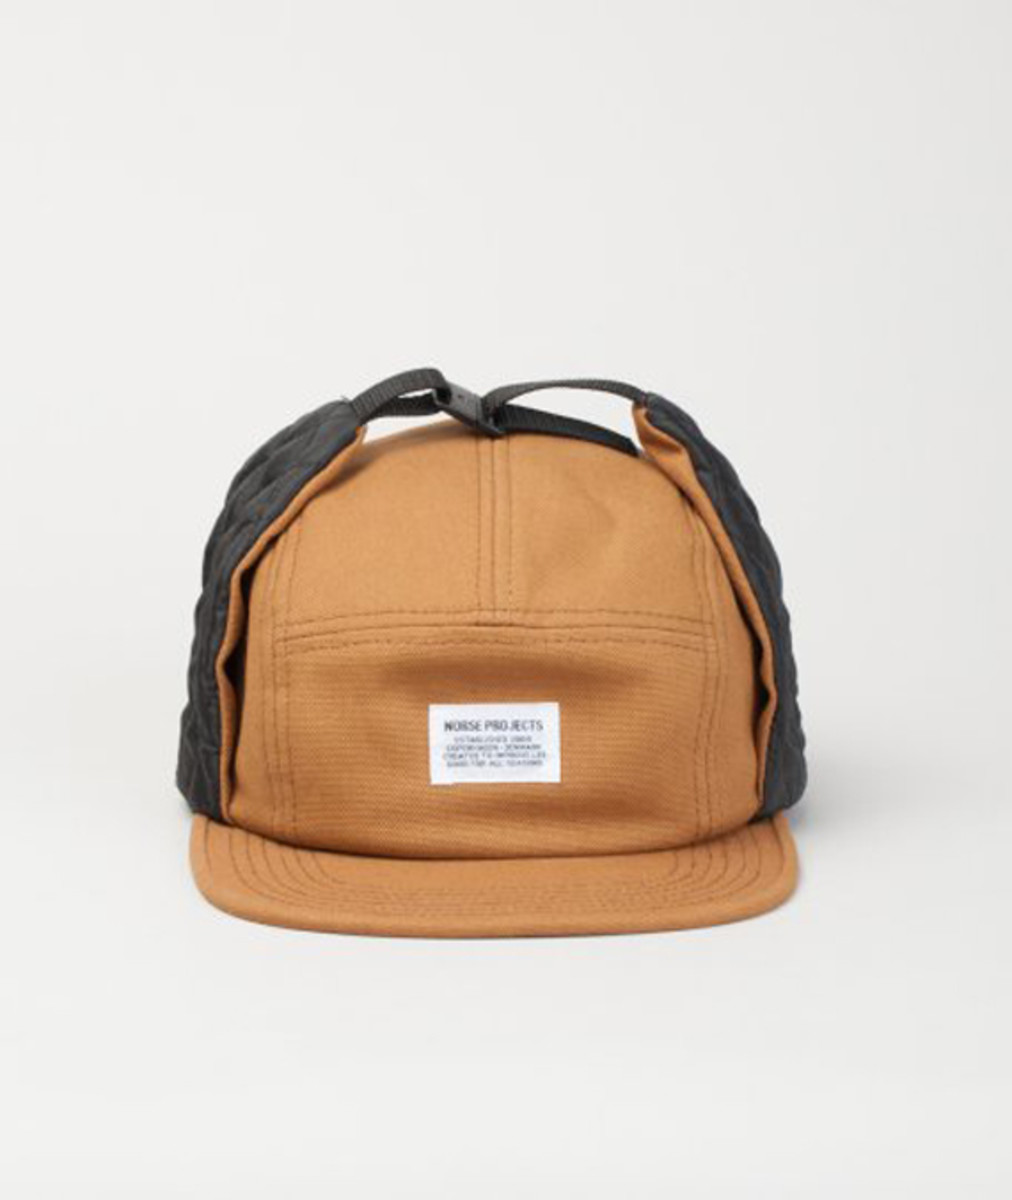 norse-projects-earflap-duck-canvas-cap-05